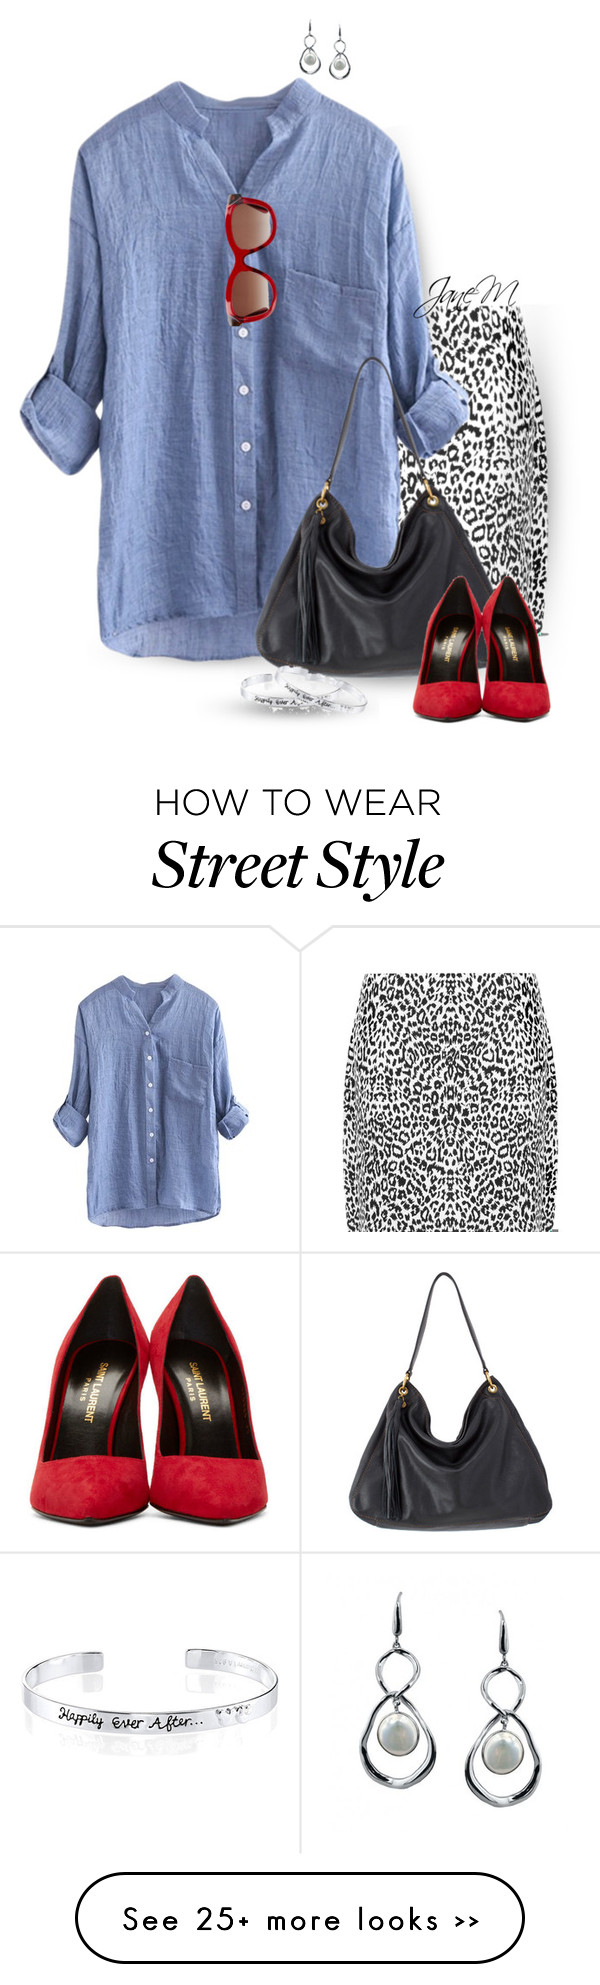 """""""Street style"""" by janemichaud-ipod on Polyvore"""